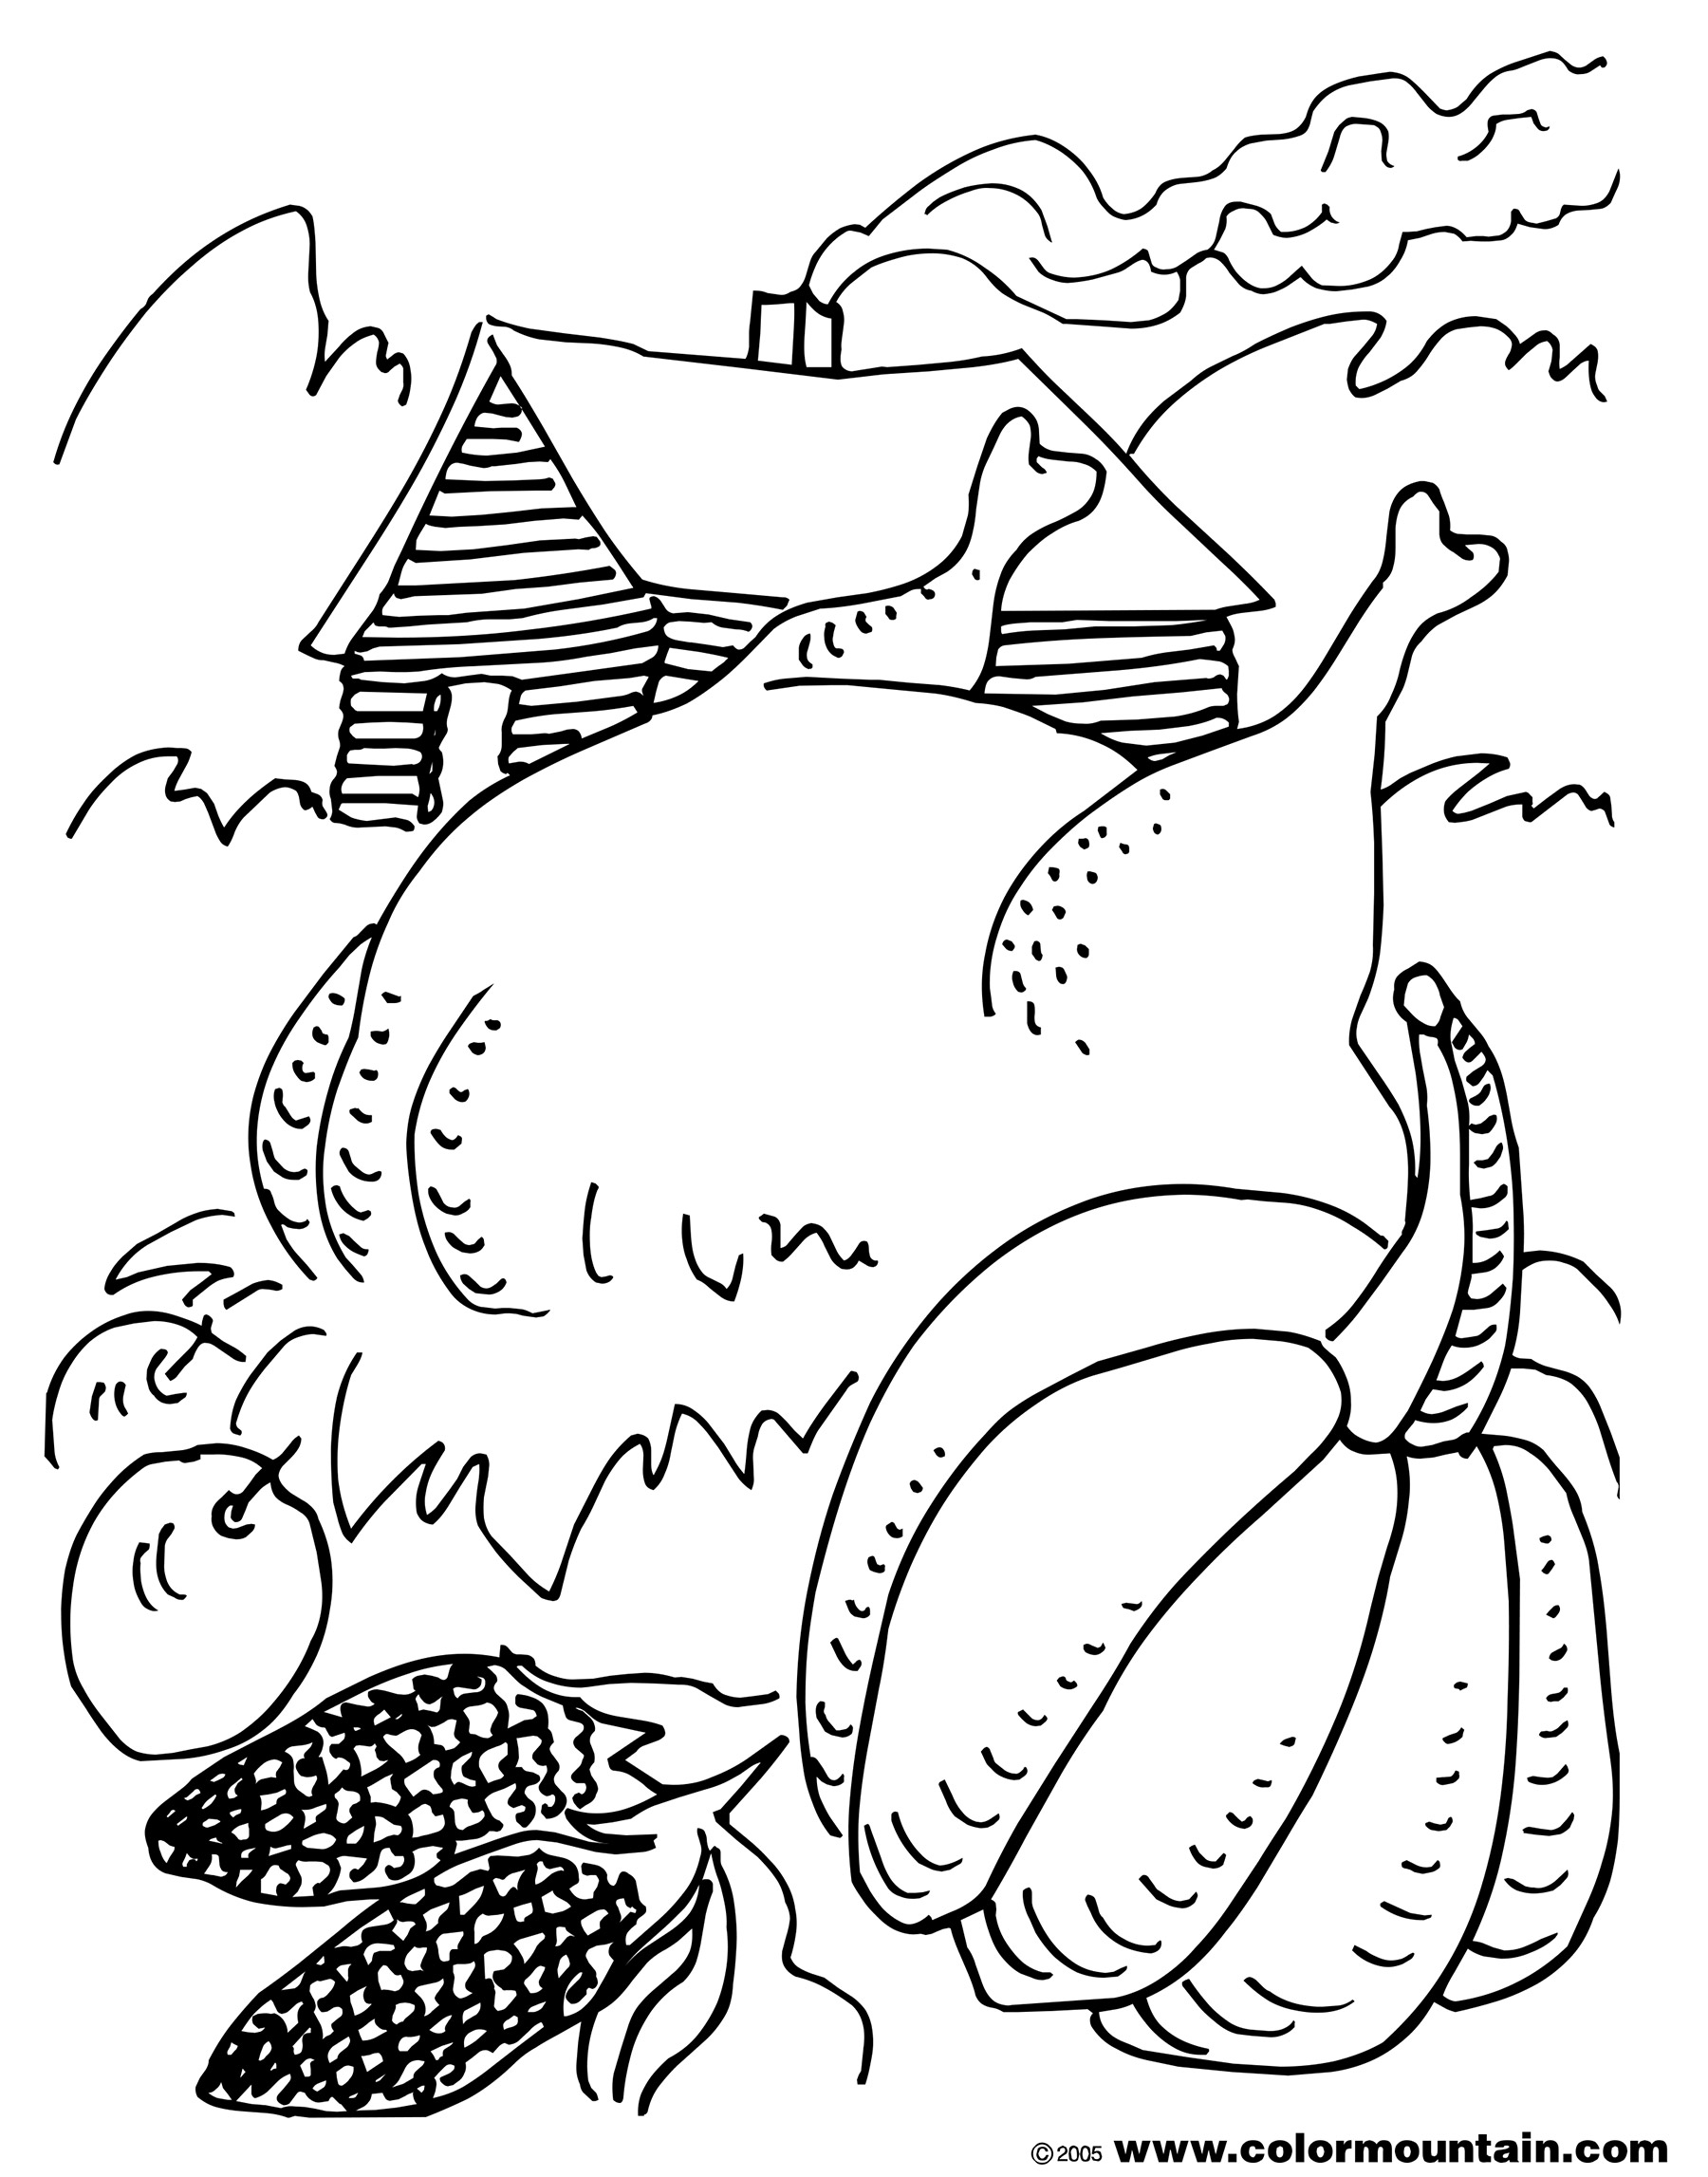 harvest colouring sheets 23 inspired photo of autumn coloring pages birijuscom sheets harvest colouring